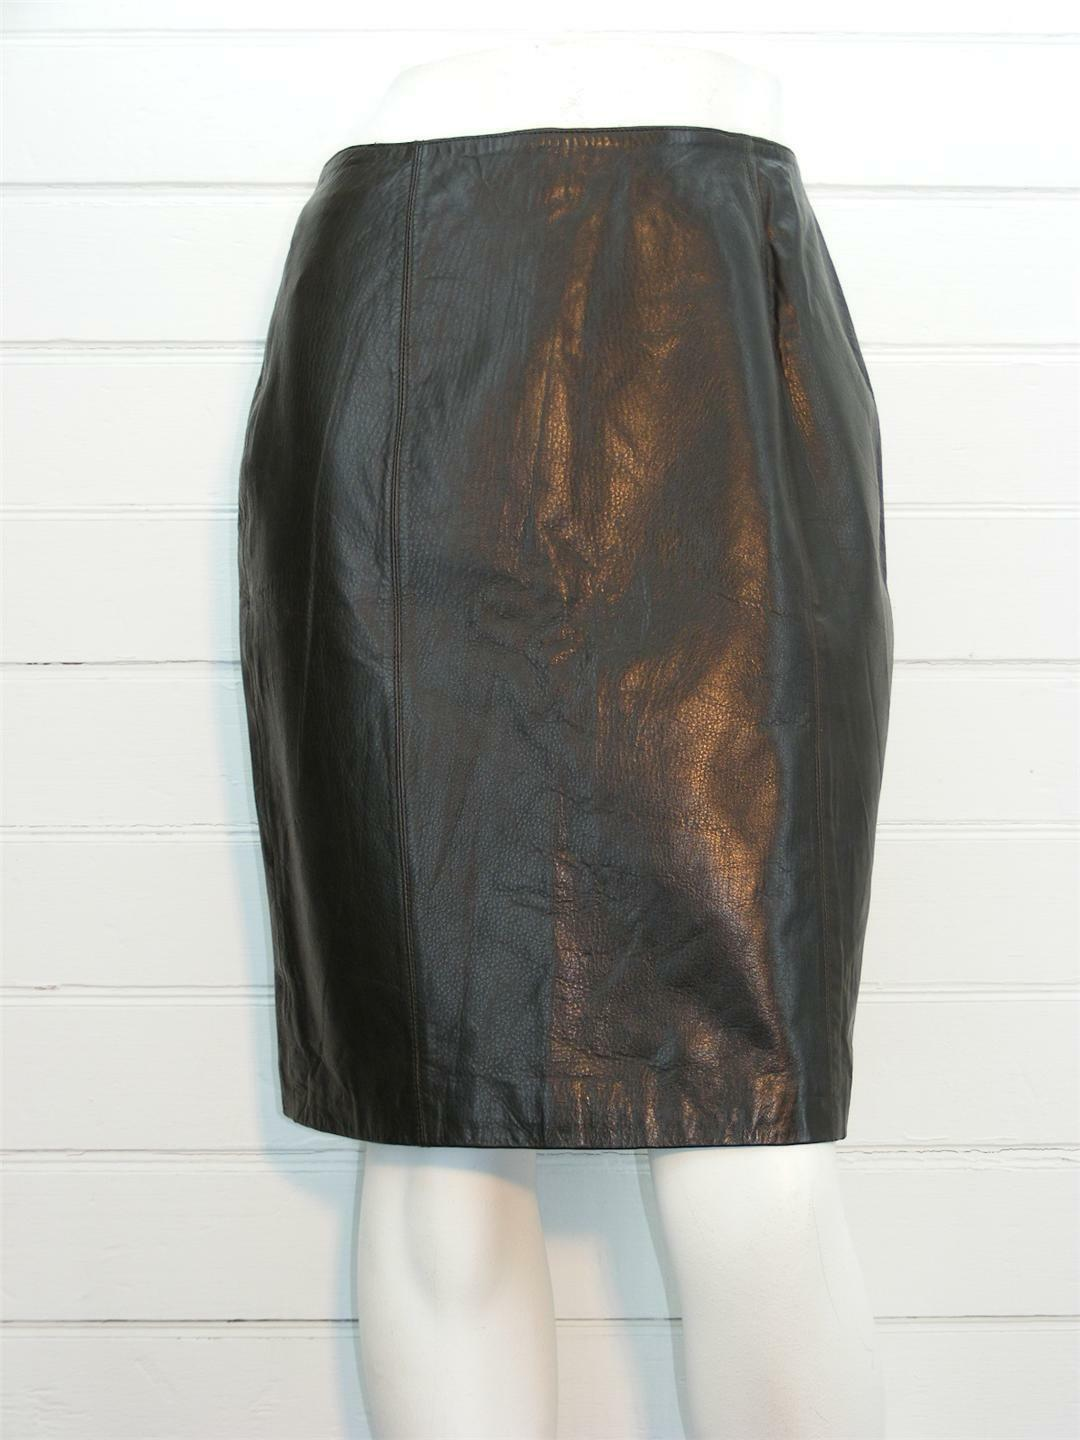 Brown Real 100% Leather soft LINED Below Knee A-Line Skirt, Sz 8 - W29  x L22